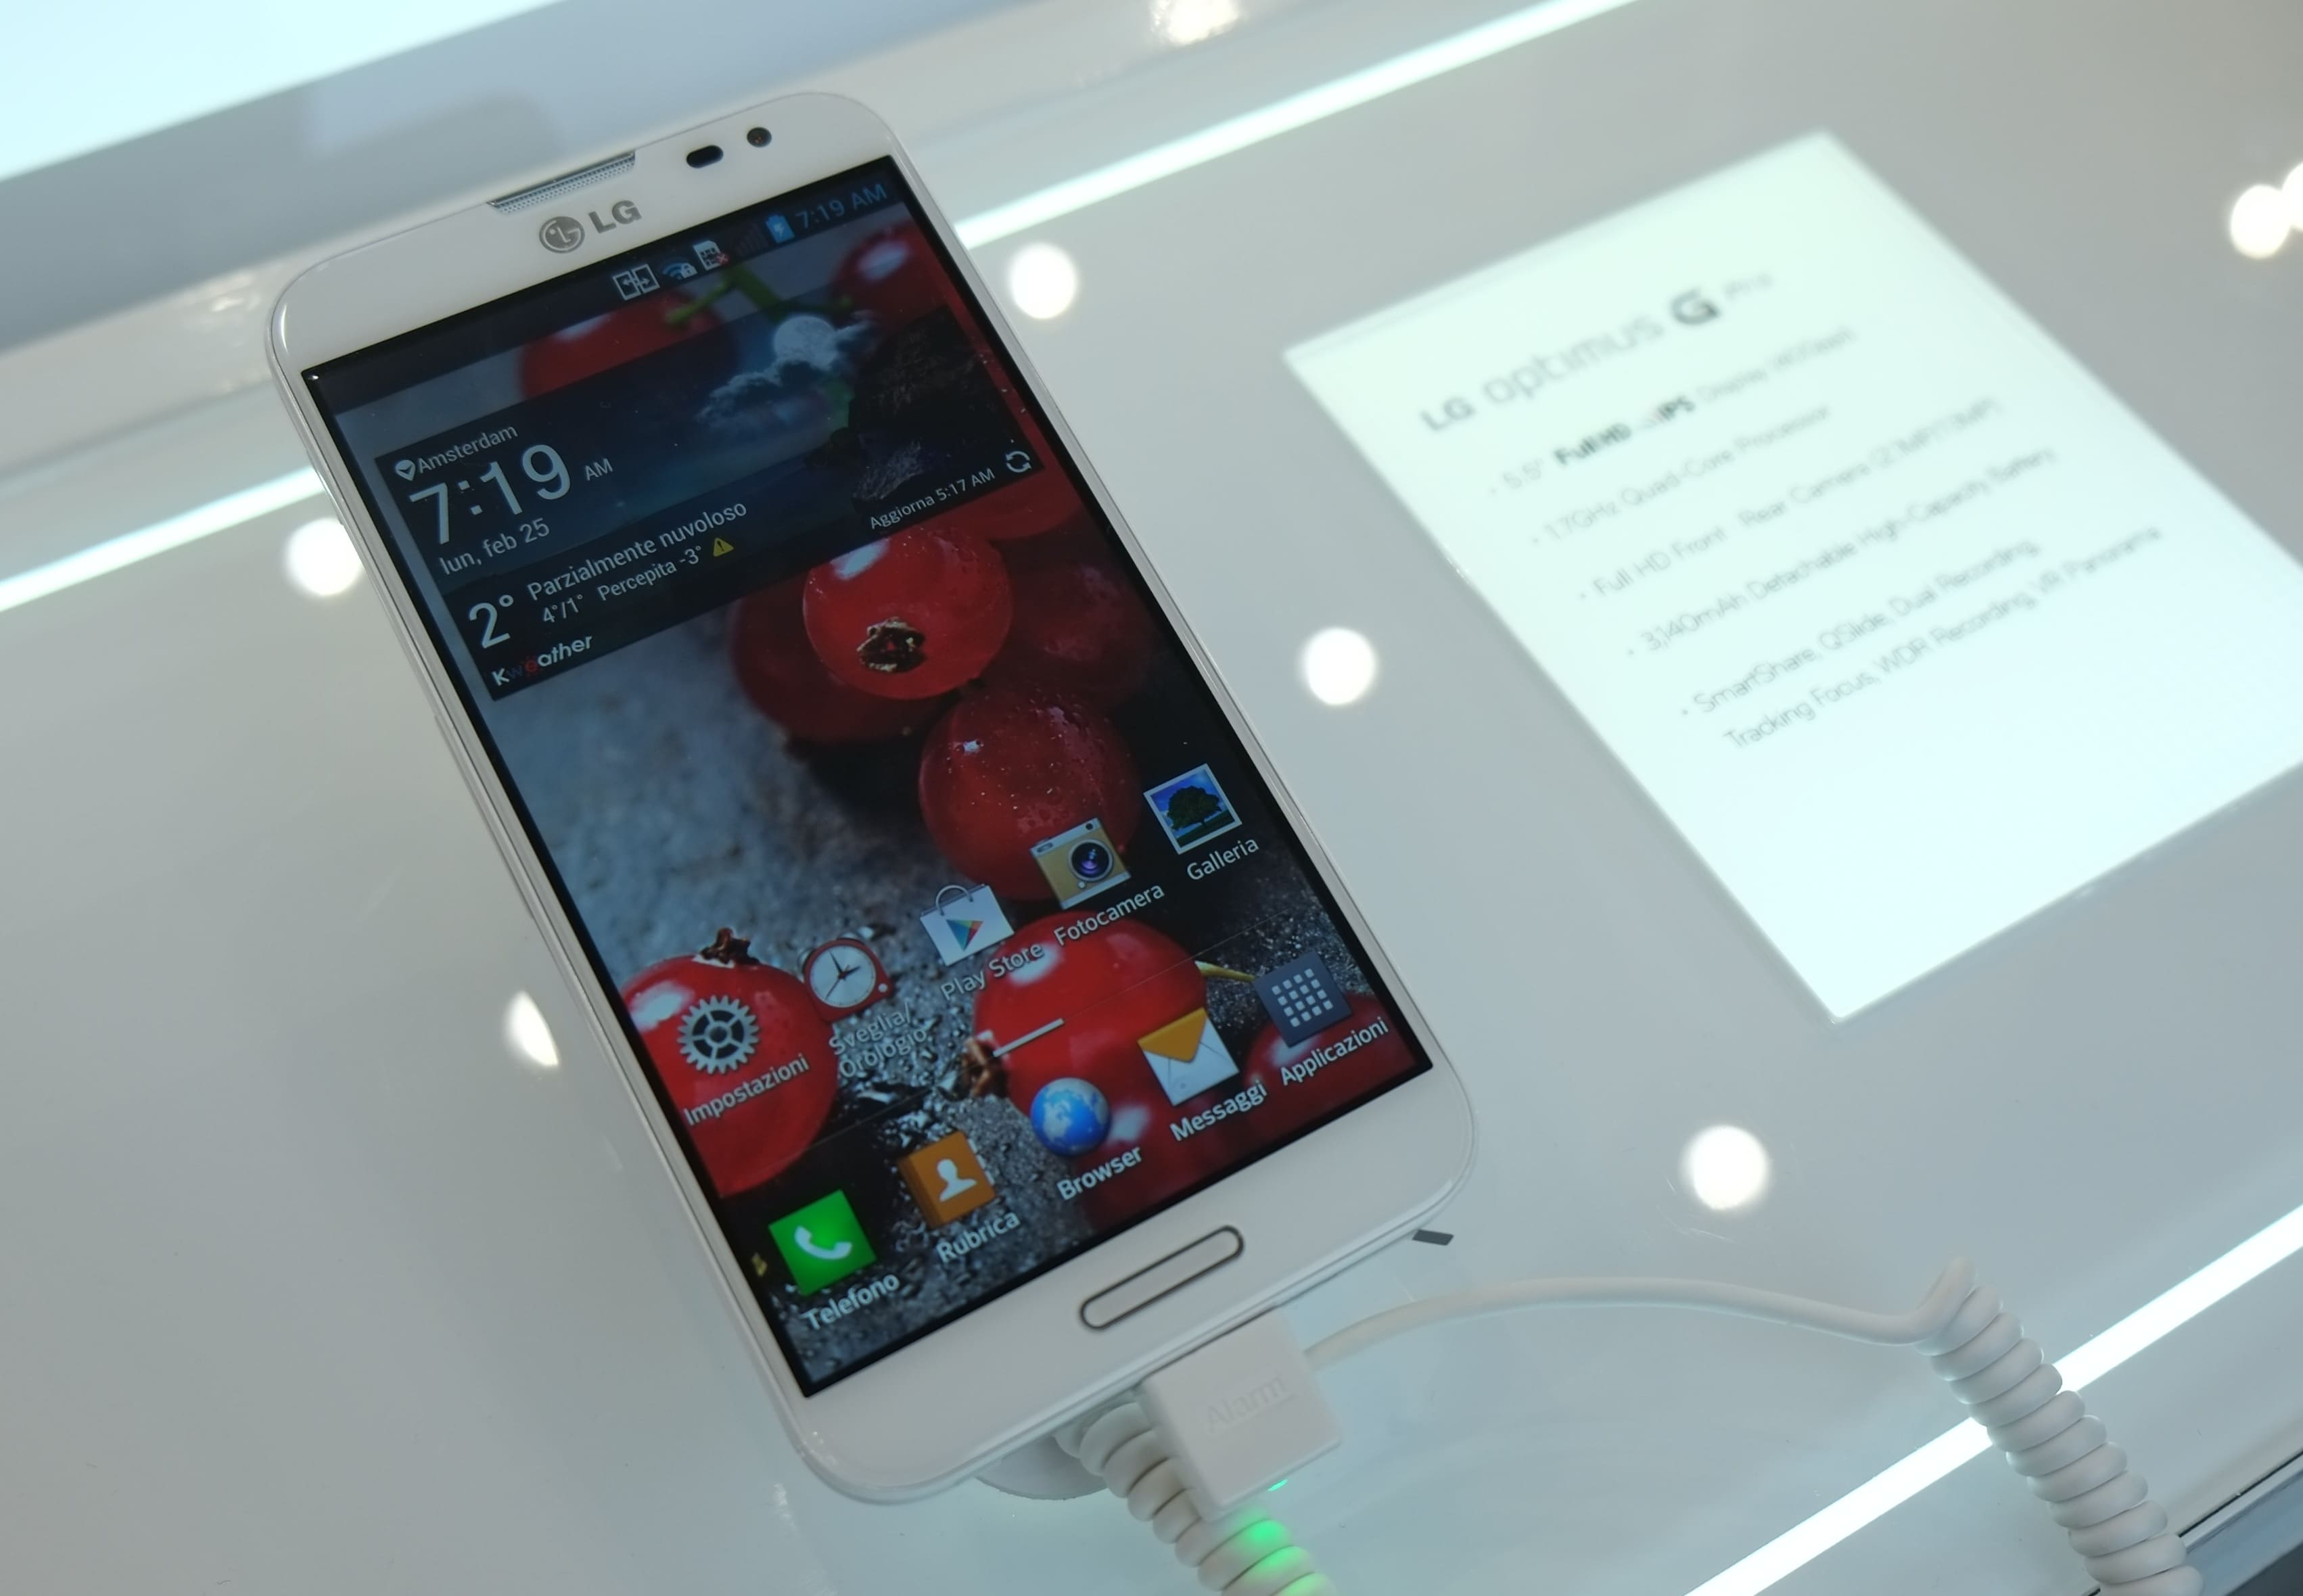 LG Optimus G Pro, la nostra anteprima dall'MWC (con sample video e foto)